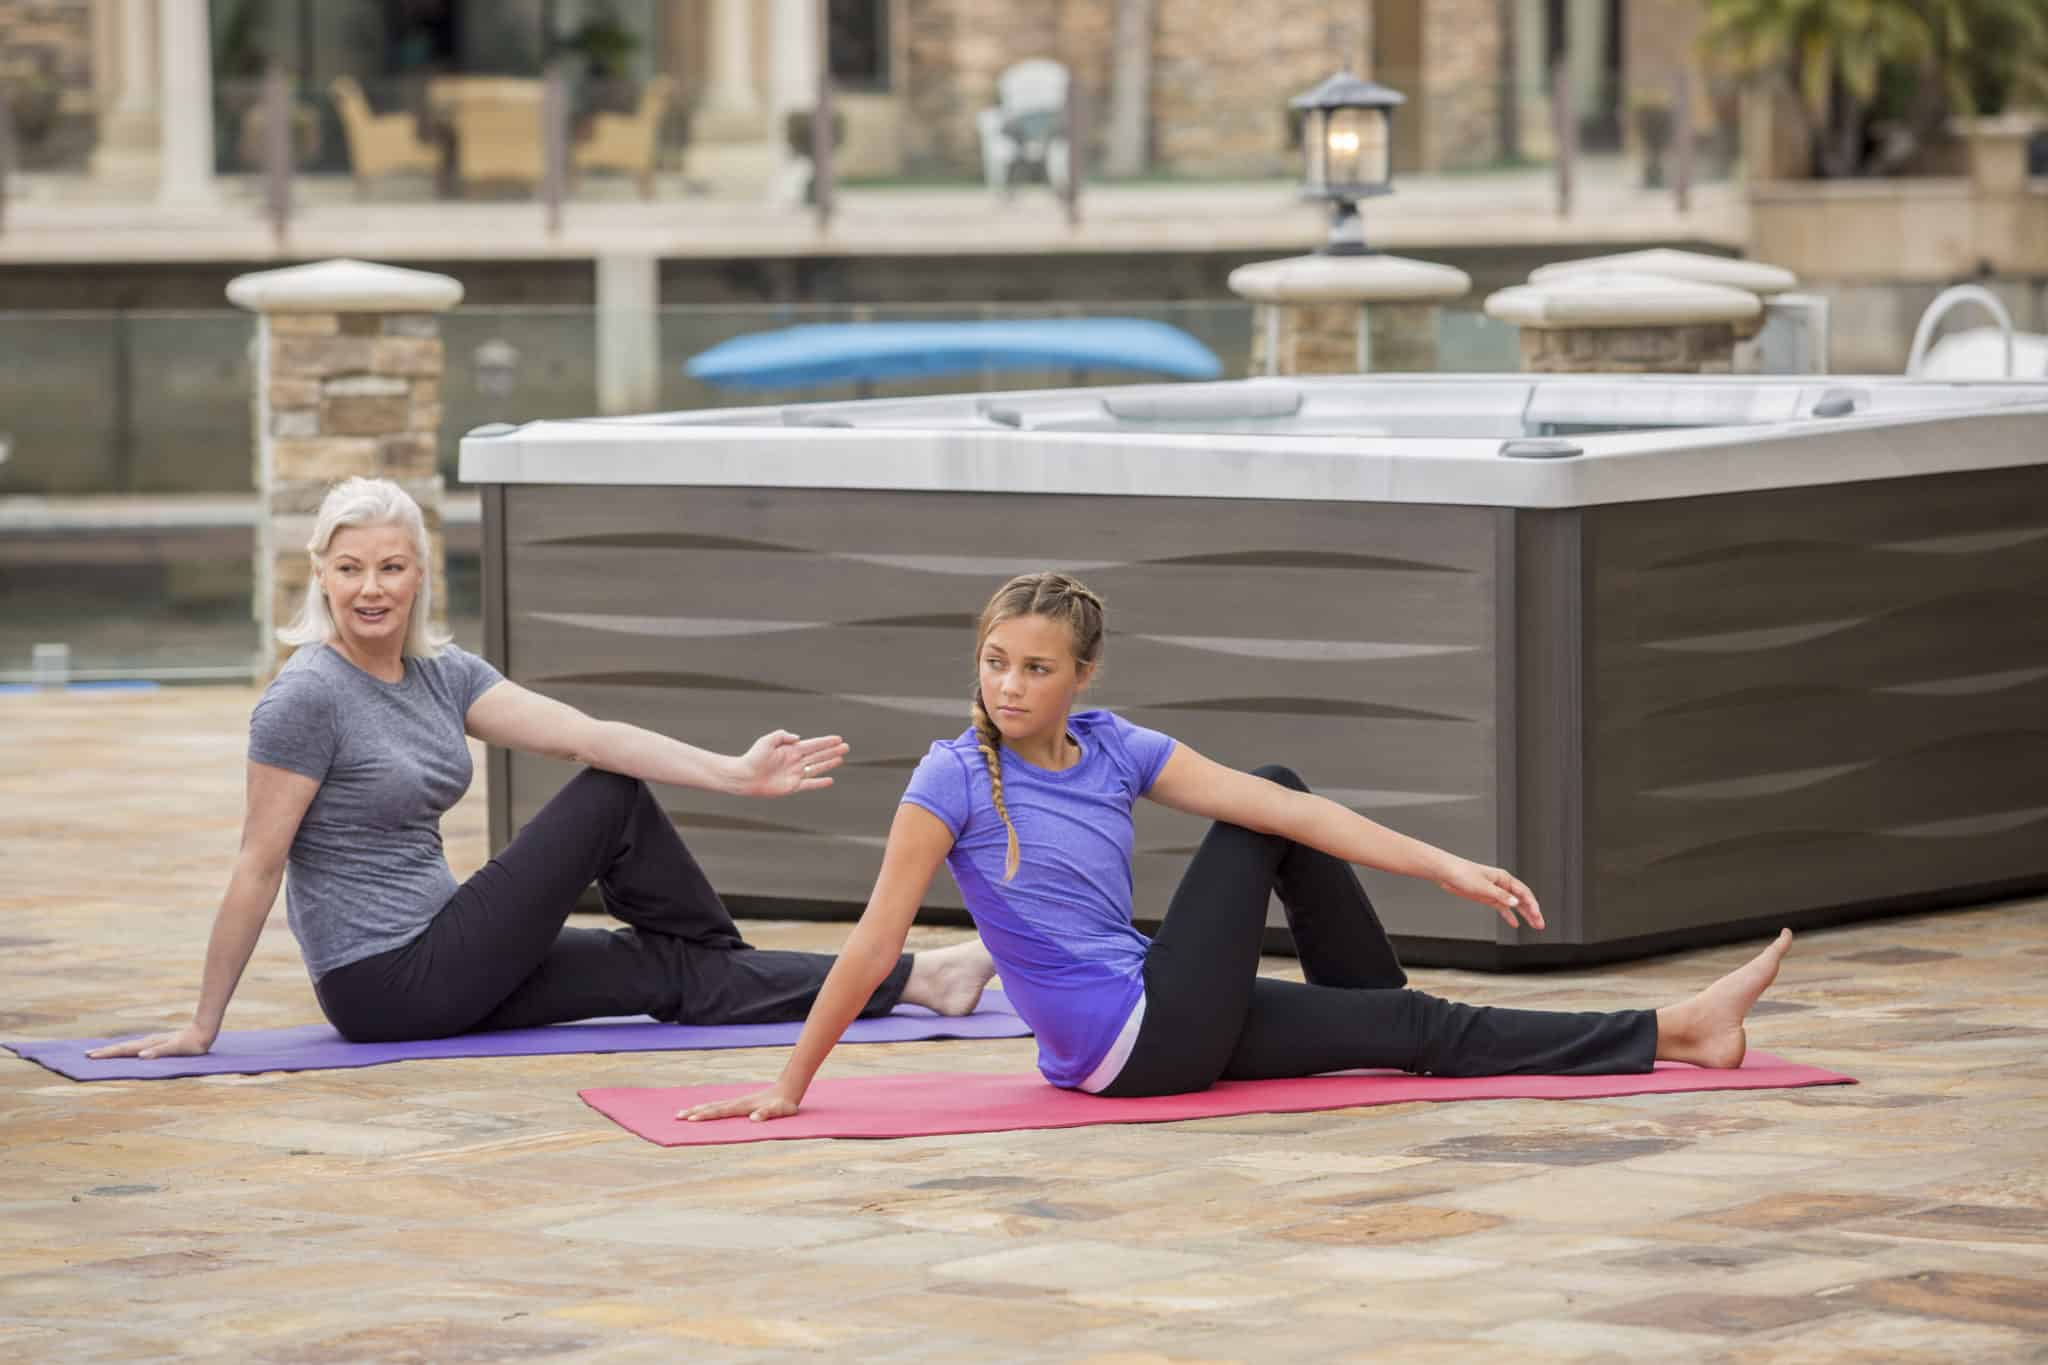 Grandmother and granddaughter doing yoga beside a hot tub.